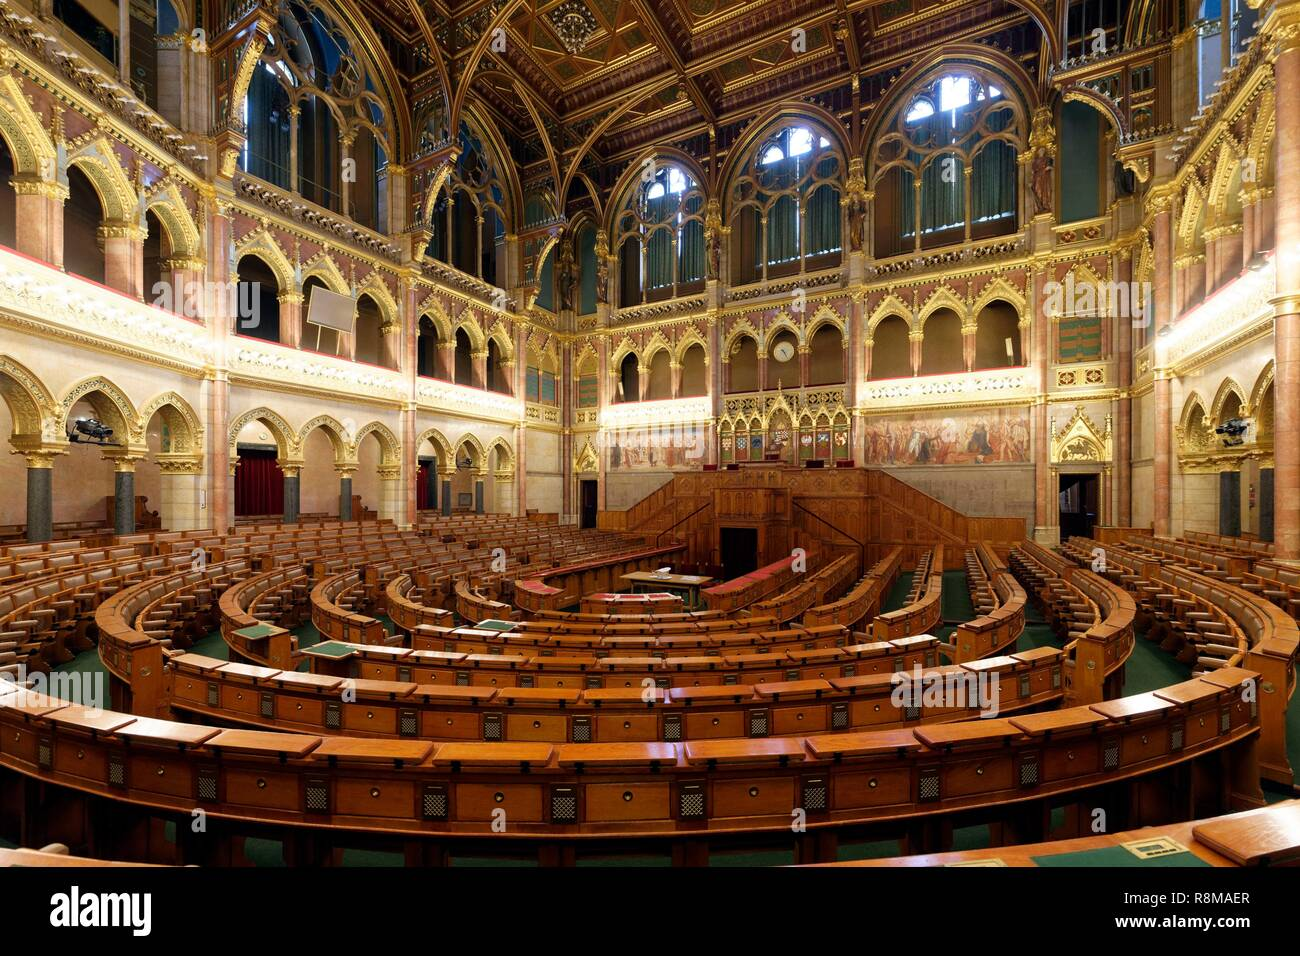 Hungary, Budapest, listed as World Heritage by UNESCO, Pest district, the Hungarian Parliament Building, a large neo gothic monument built in the early 20th century, seat of the National Assembly of Hungary, debating chamber - Stock Image